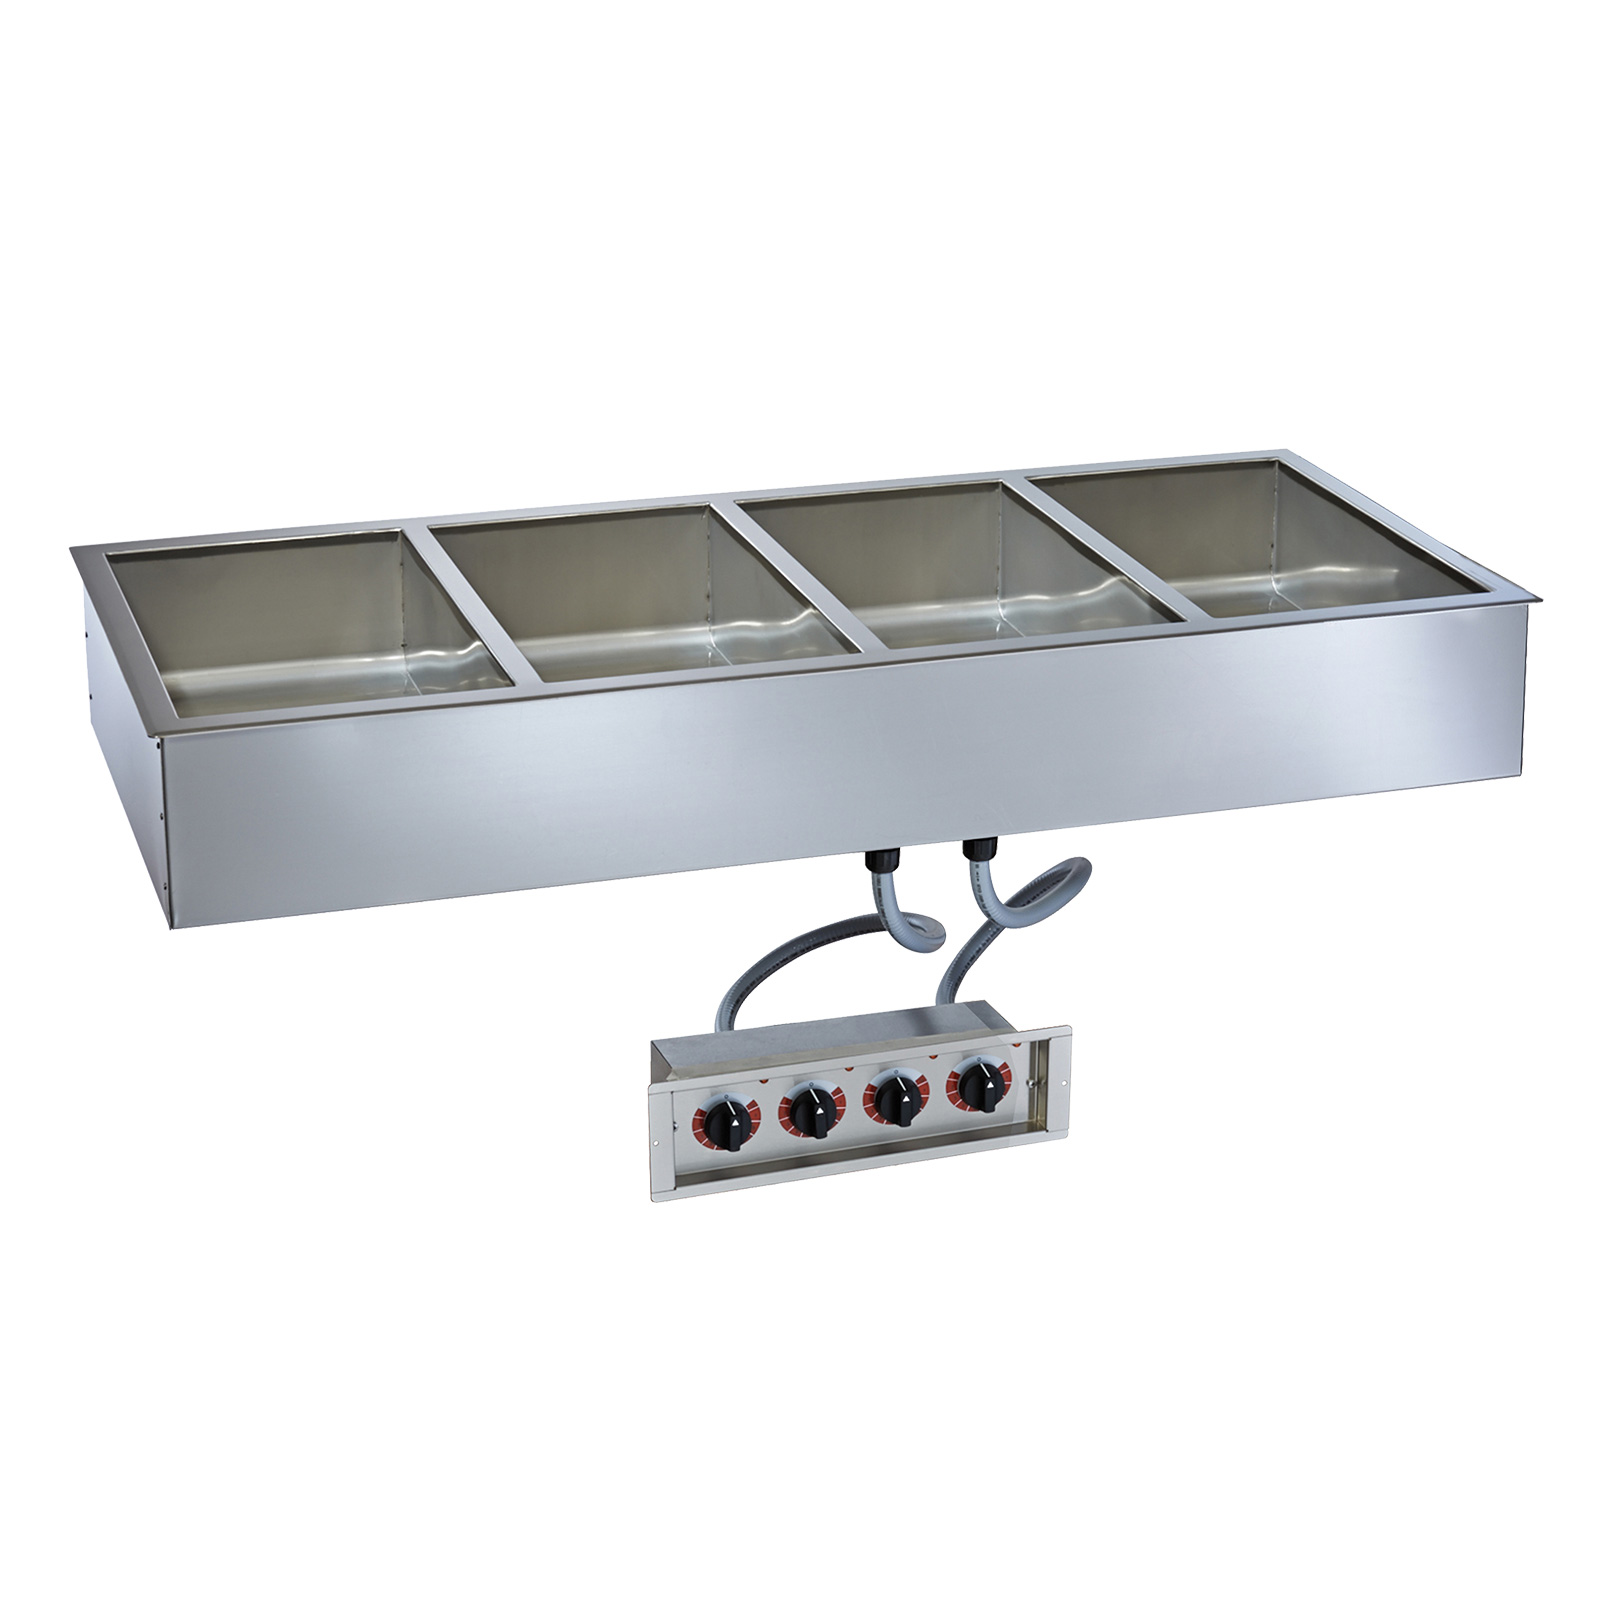 Alto-Shaam 400-HWILF/D6 hot food well unit, drop-in, electric